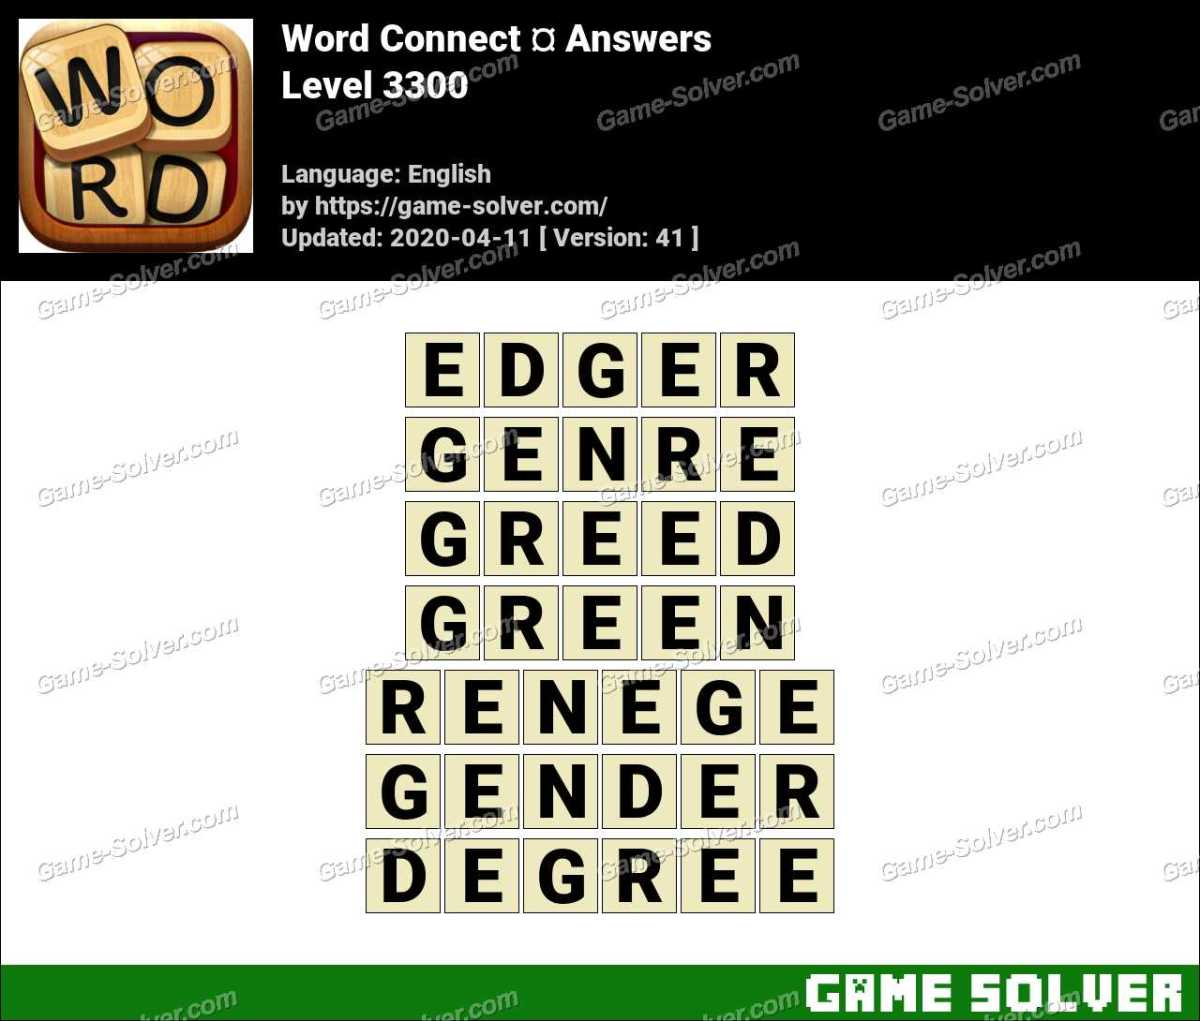 Word Connect Level 3300 Answers